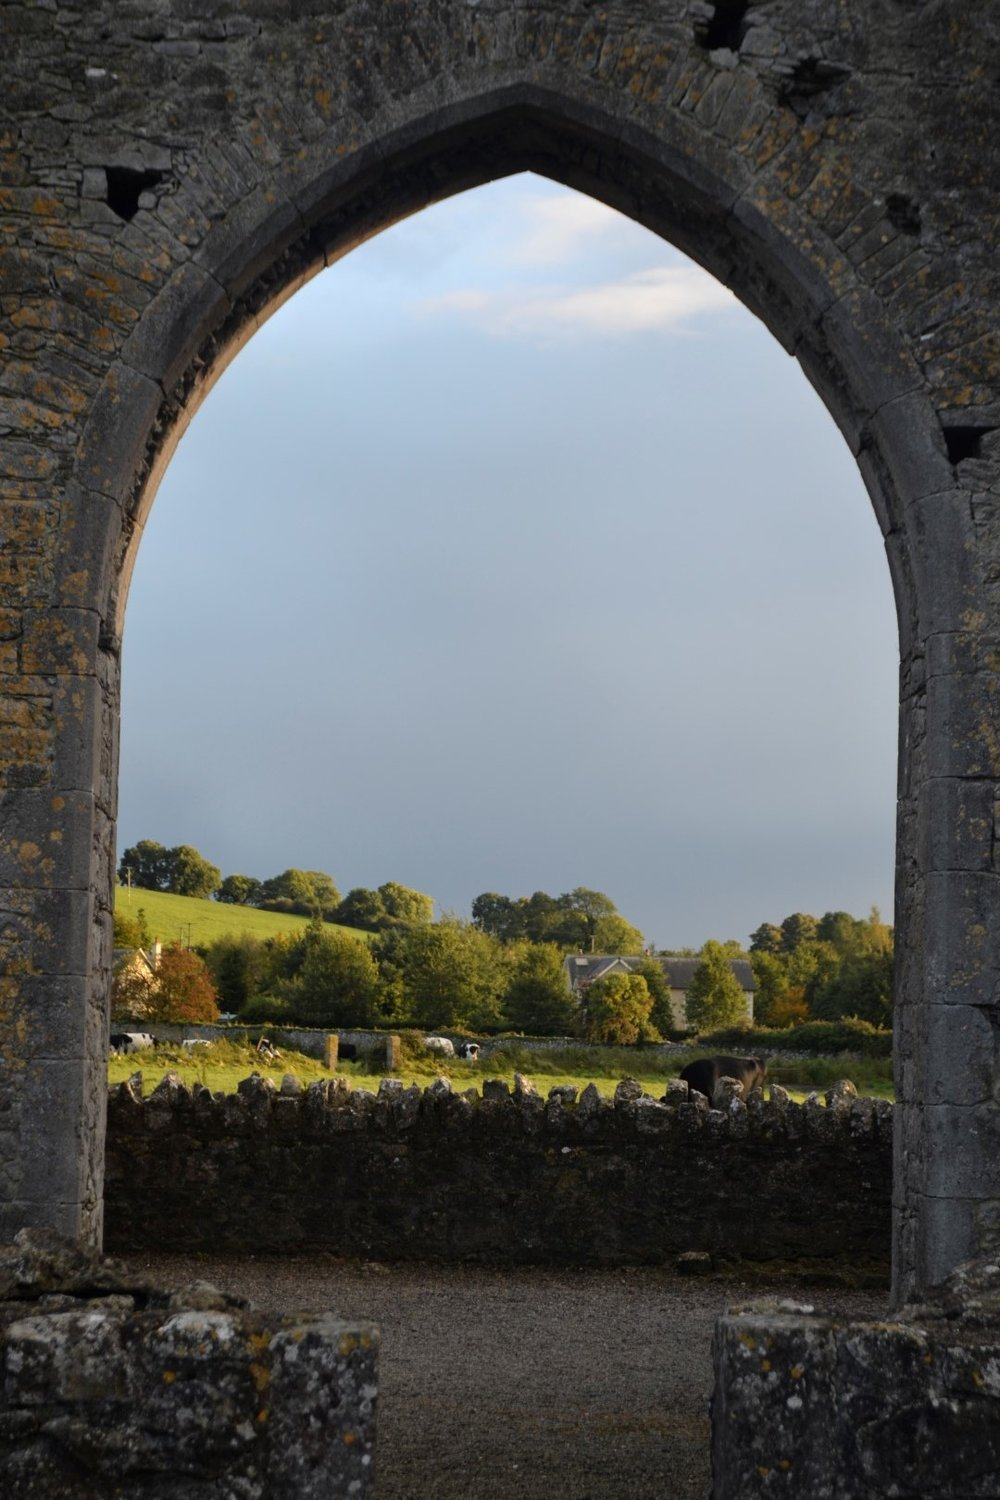 Hore Abbey, photo: Andy Bruner